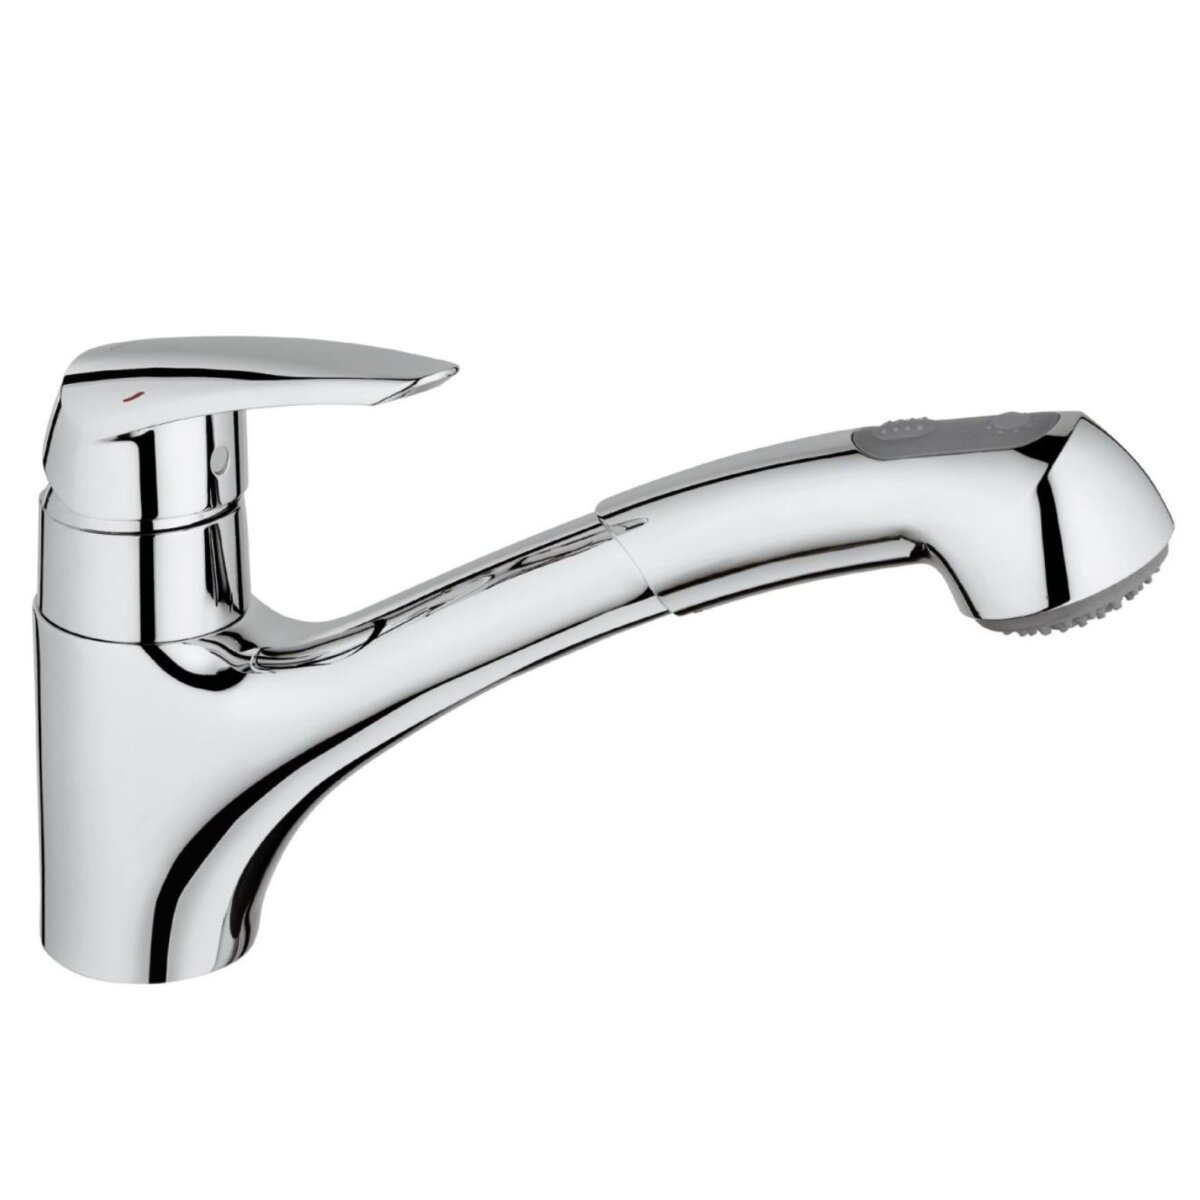 Kitchen-mixer-tap-Grohe-259263-relb9bec483